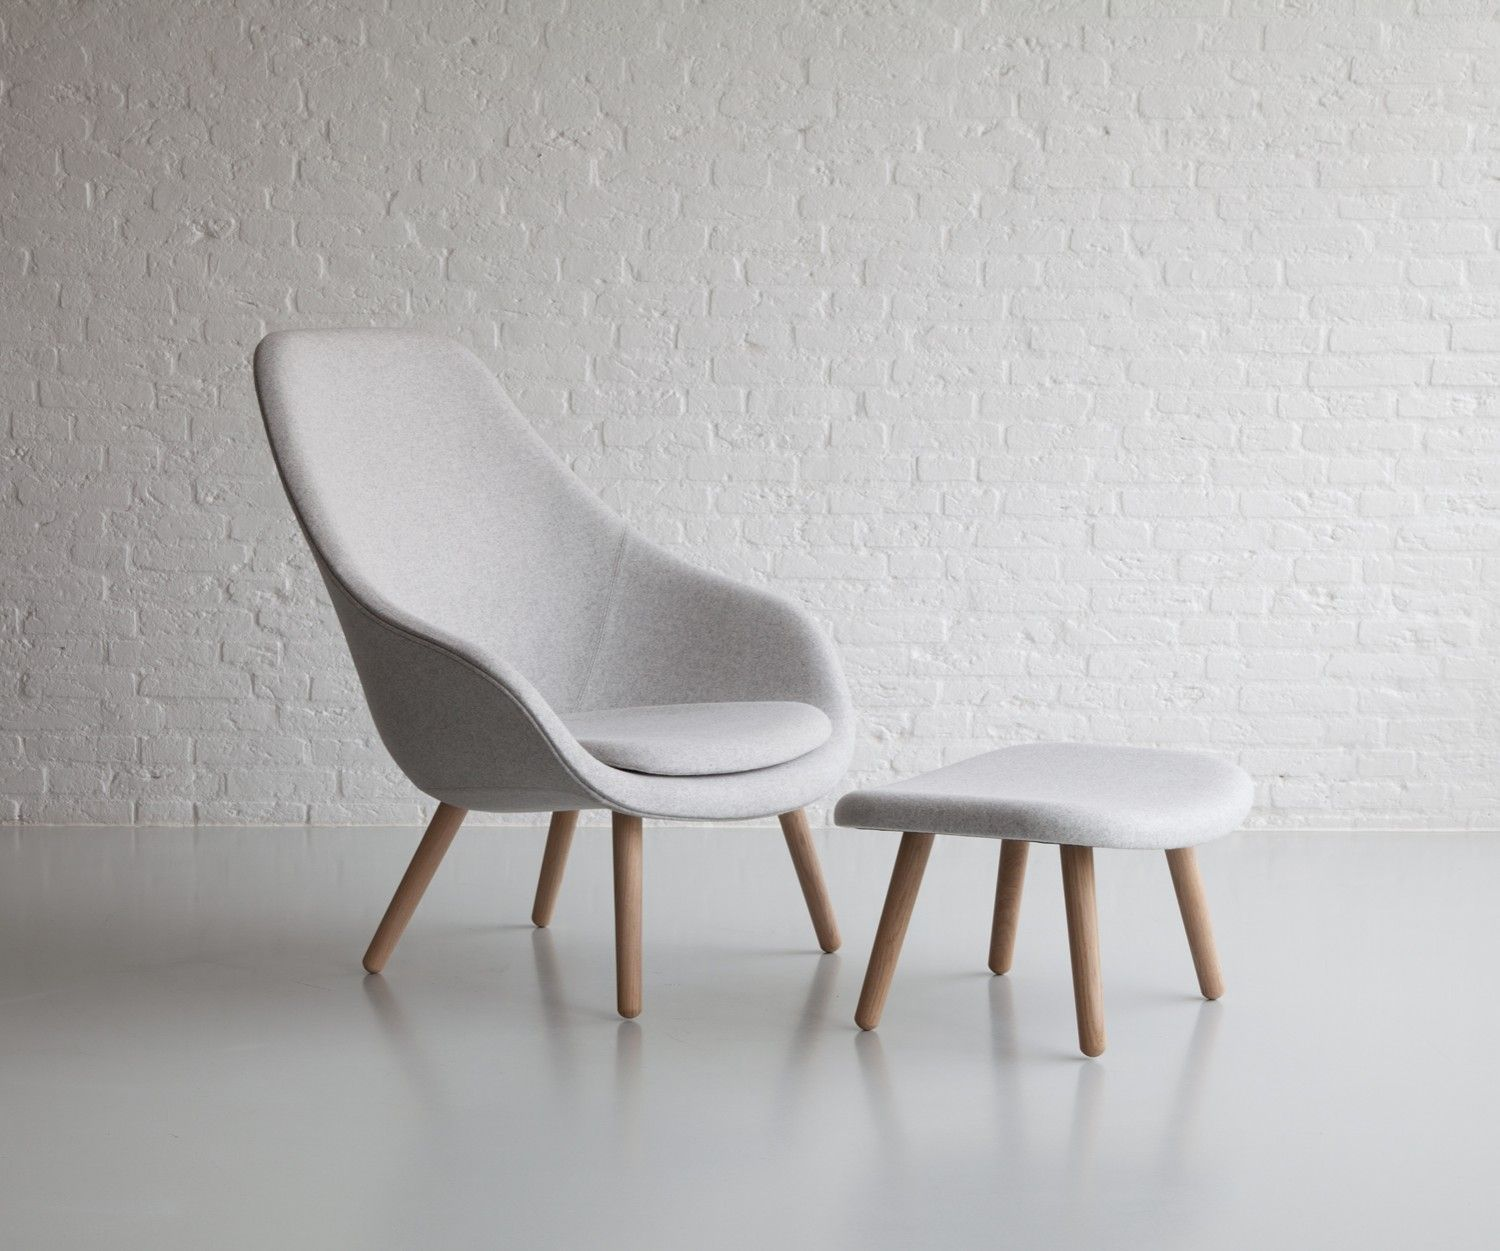 Hay Lounge Stoel.About A Lounge Chair Aal92 By Hay Office Decor Hay Chair Futon